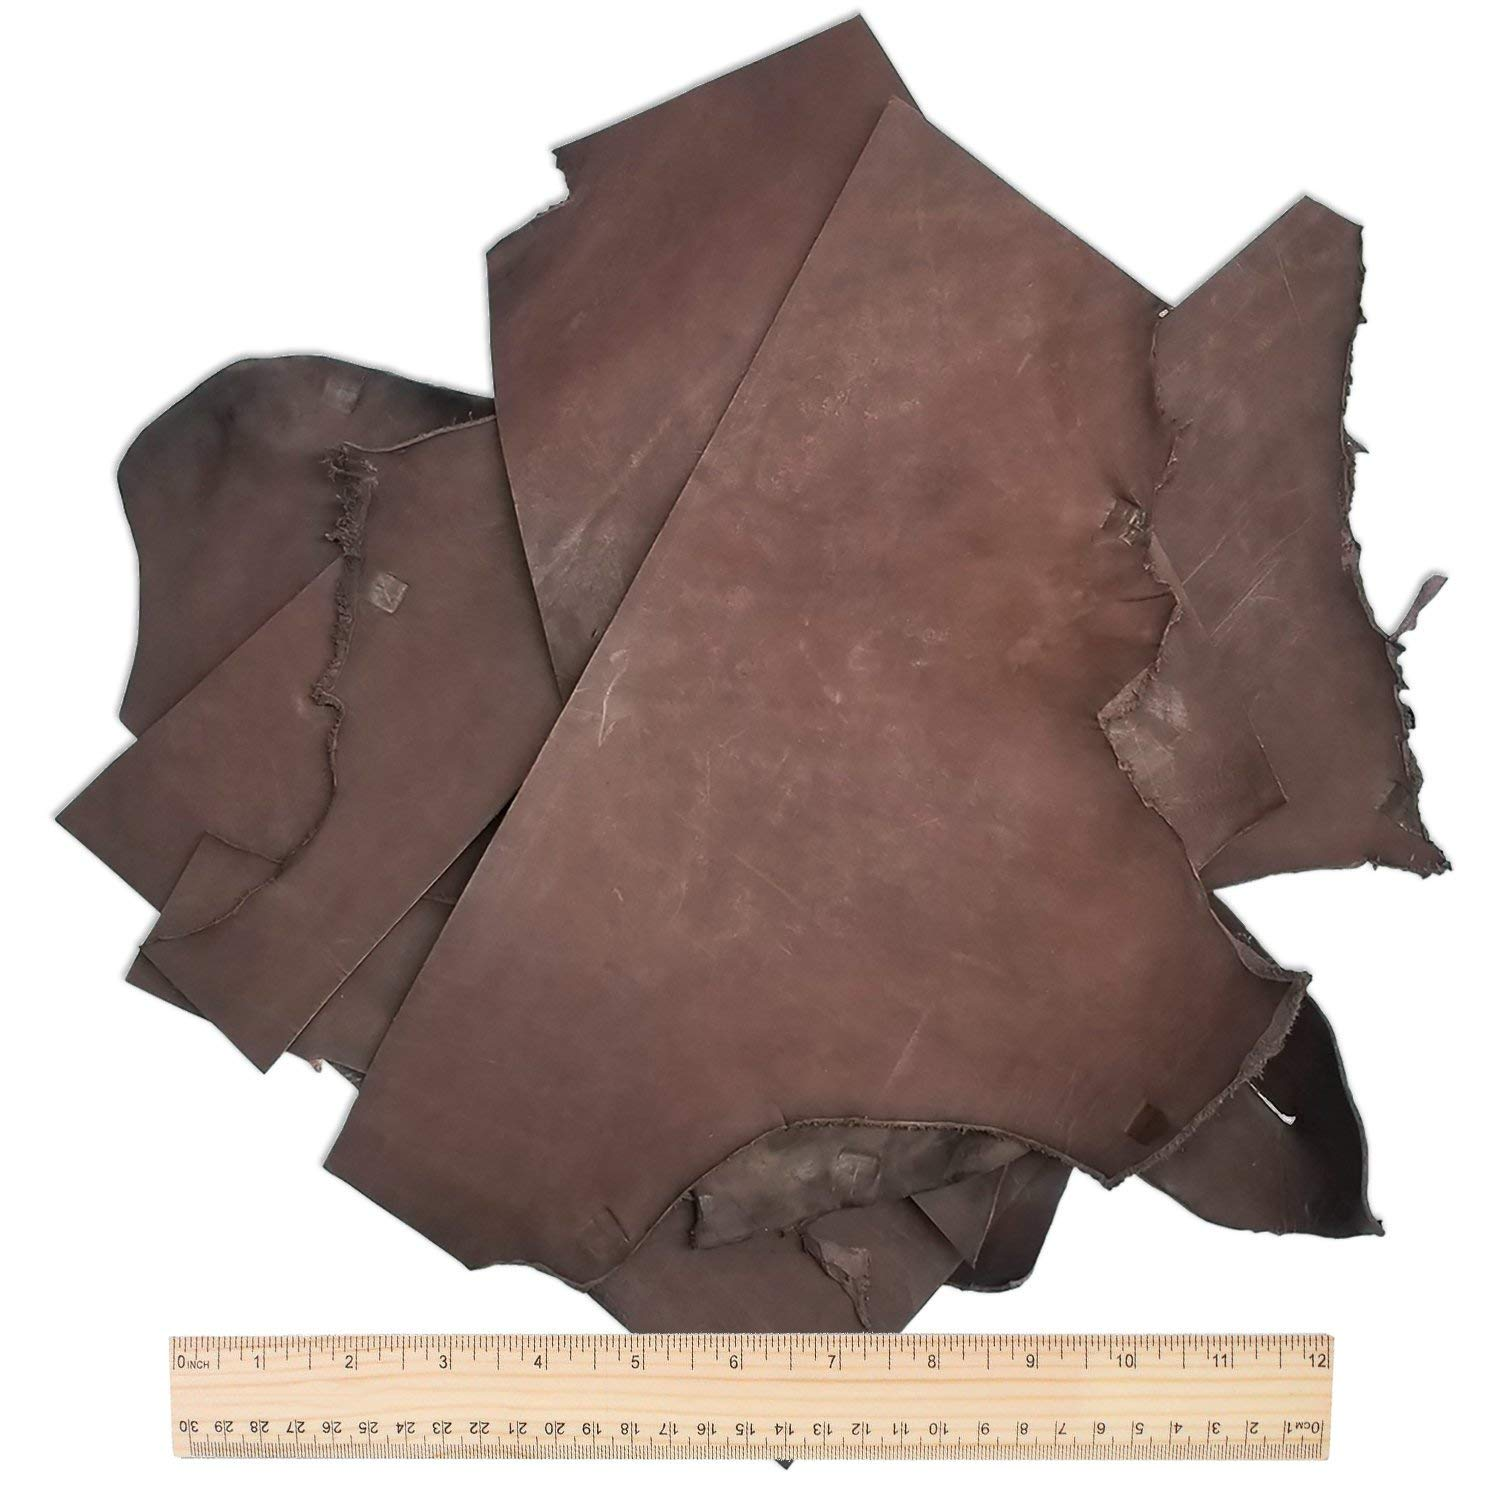 5 Pounds of, Large, Usable Holster & Sheath Leather Scraps, Rich Havanna Brown Color, Molds and Tools Well, Great For Leather Crafting, Holster and Sheath Making, USA Hide by Outfitters Supply (Image #2)